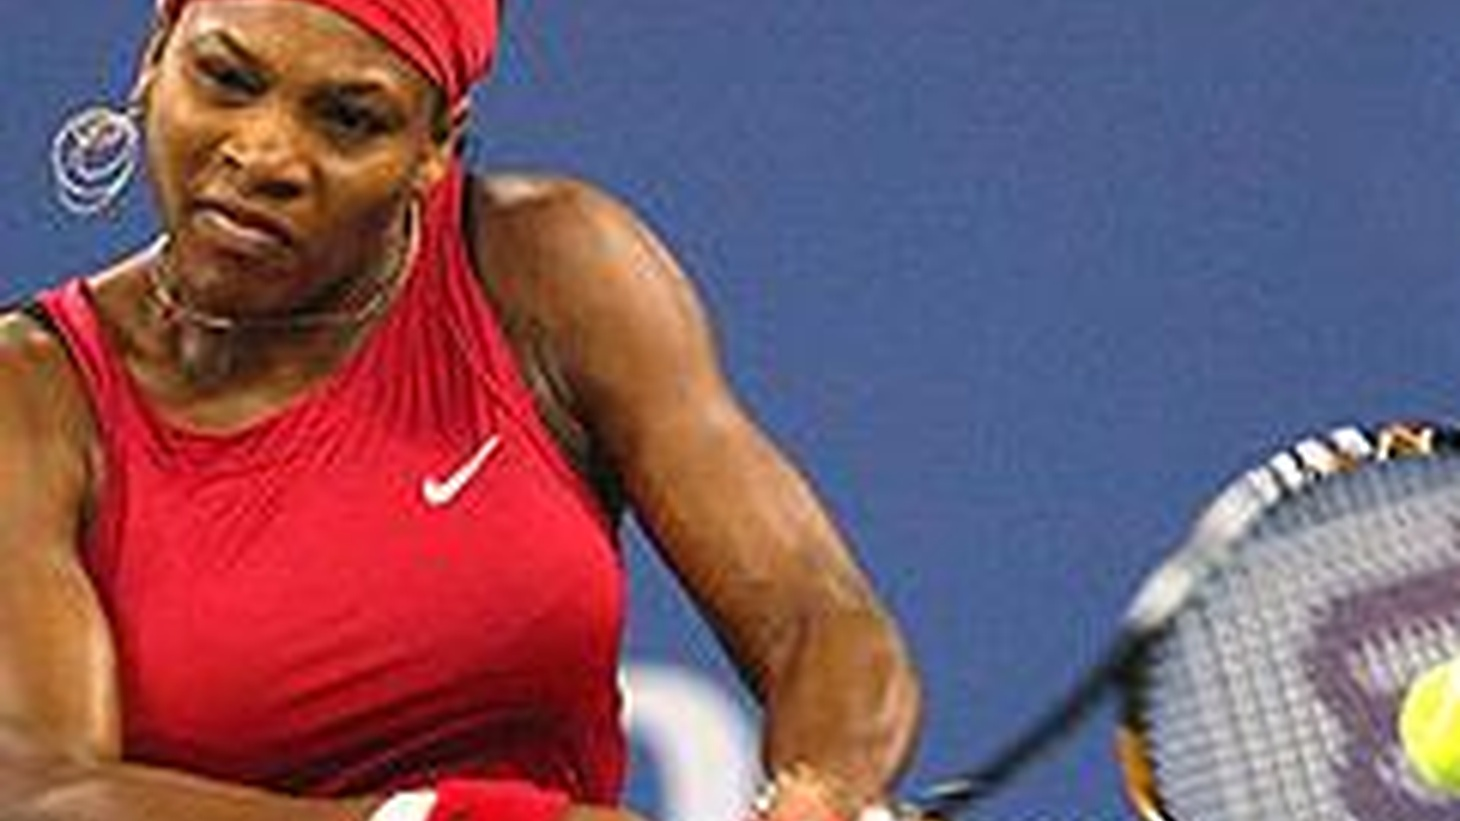 I've said it before and I'll say it again. Now that the U.S. Open has ended, so should the professional tennis season. The last Grand Slam of the year culminated in swirling drama in New York. On the women's side, the two best tennis players of our era, despite rankings that erroneously indicate otherwise, sisters of a close-knit family, Venus and Serena once again met as they had at Wimbledon. That grass-court final was an epic display of sublime athletic gifts as well as a compelling showing of mutual affection and respect. Older sister Venus prevailed at the All England Lawn and Tennis Club so it was storybook touché at Arthur Ashe Stadium when this time around younger sister Serena won the slam and the attendant $1.5 million...